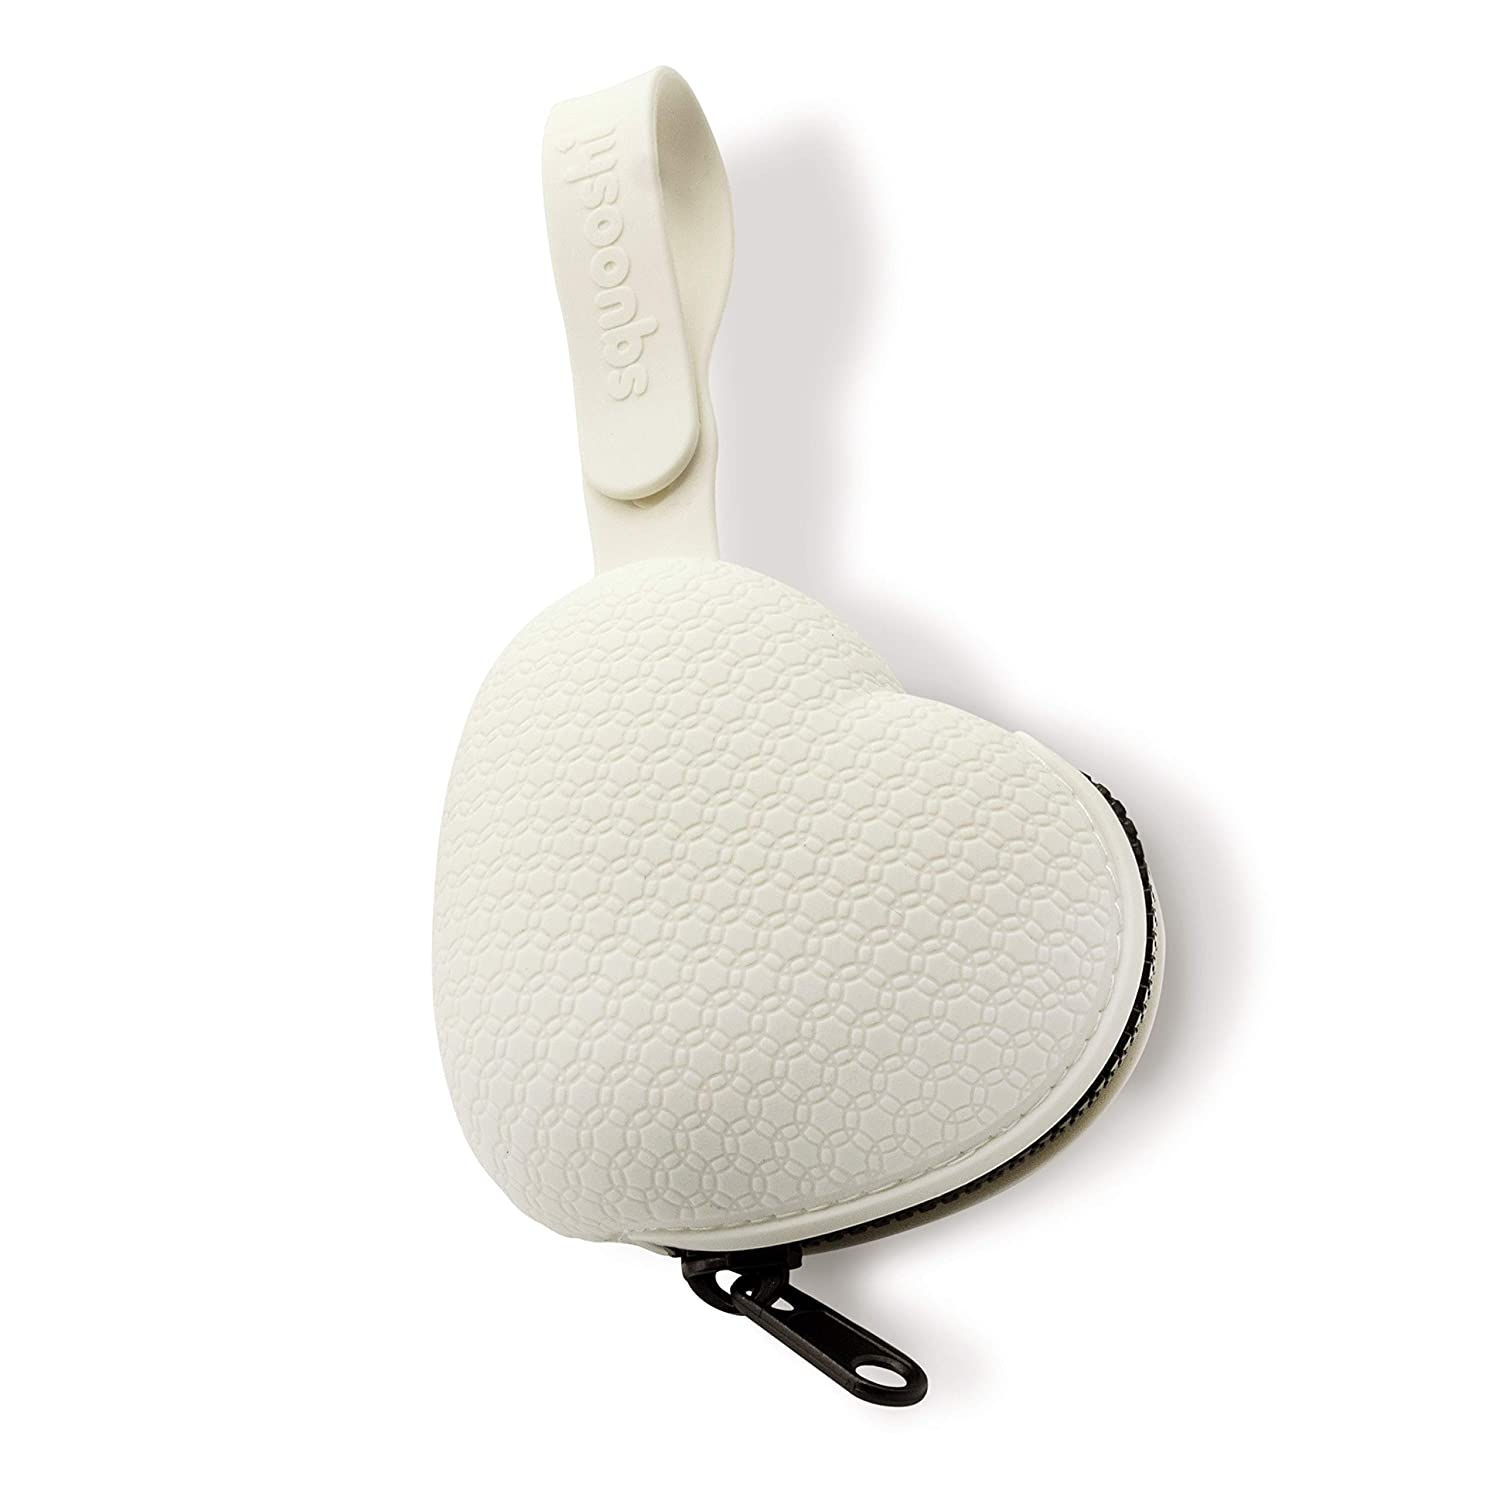 Squooshi Heart Pacifier Holder Case | BPA Free Silicone | Attaches to Strollers & Diaper Bags